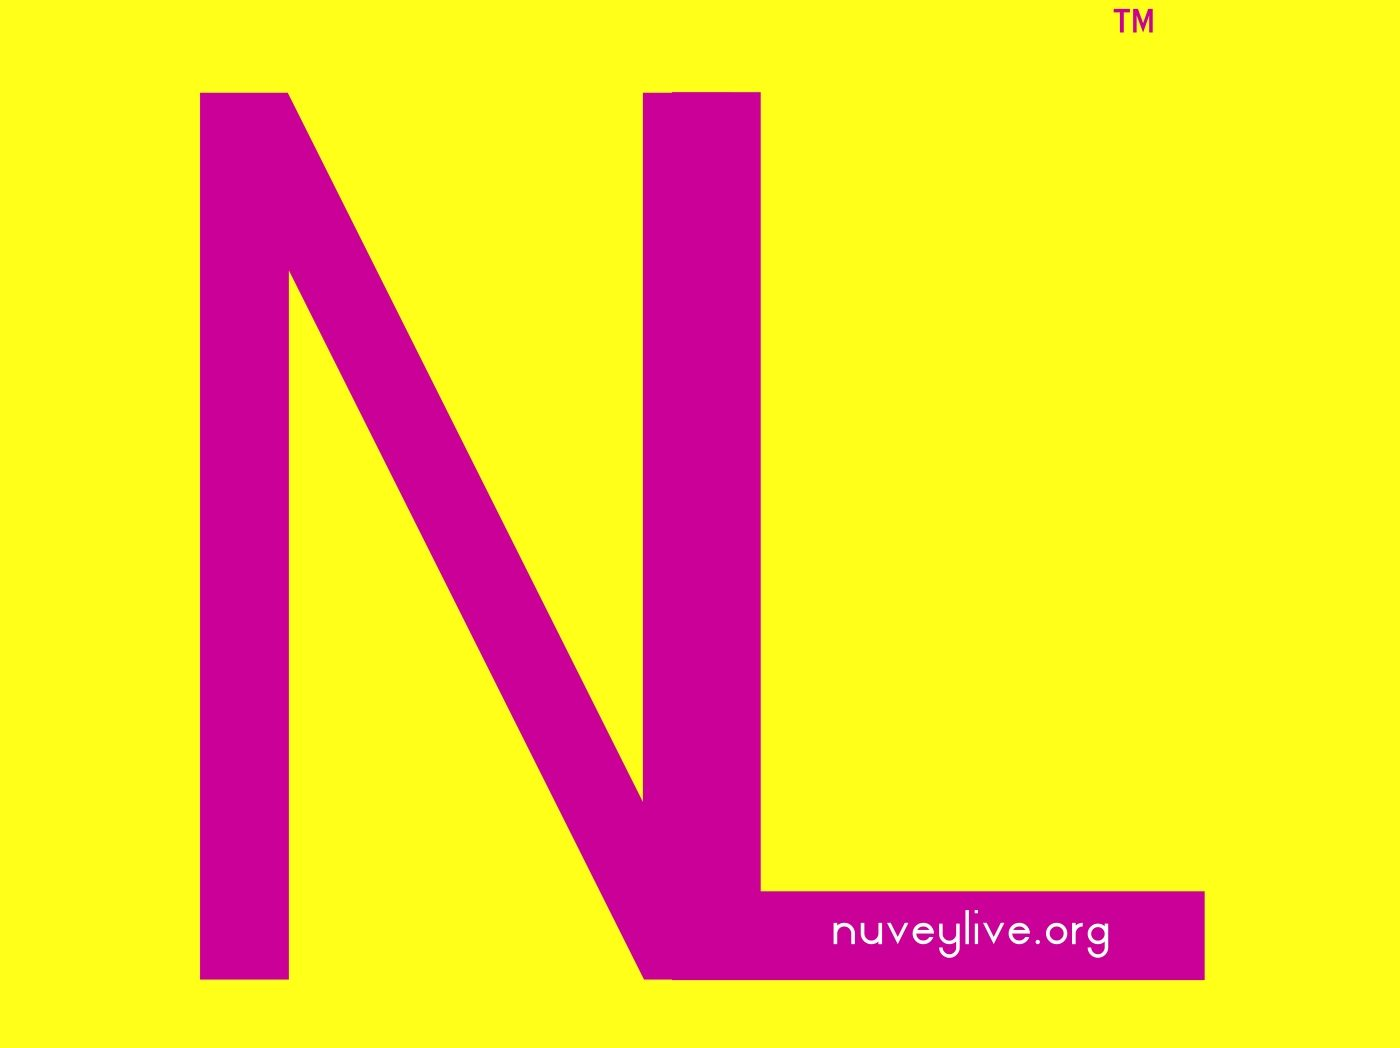 NuveyLive.org